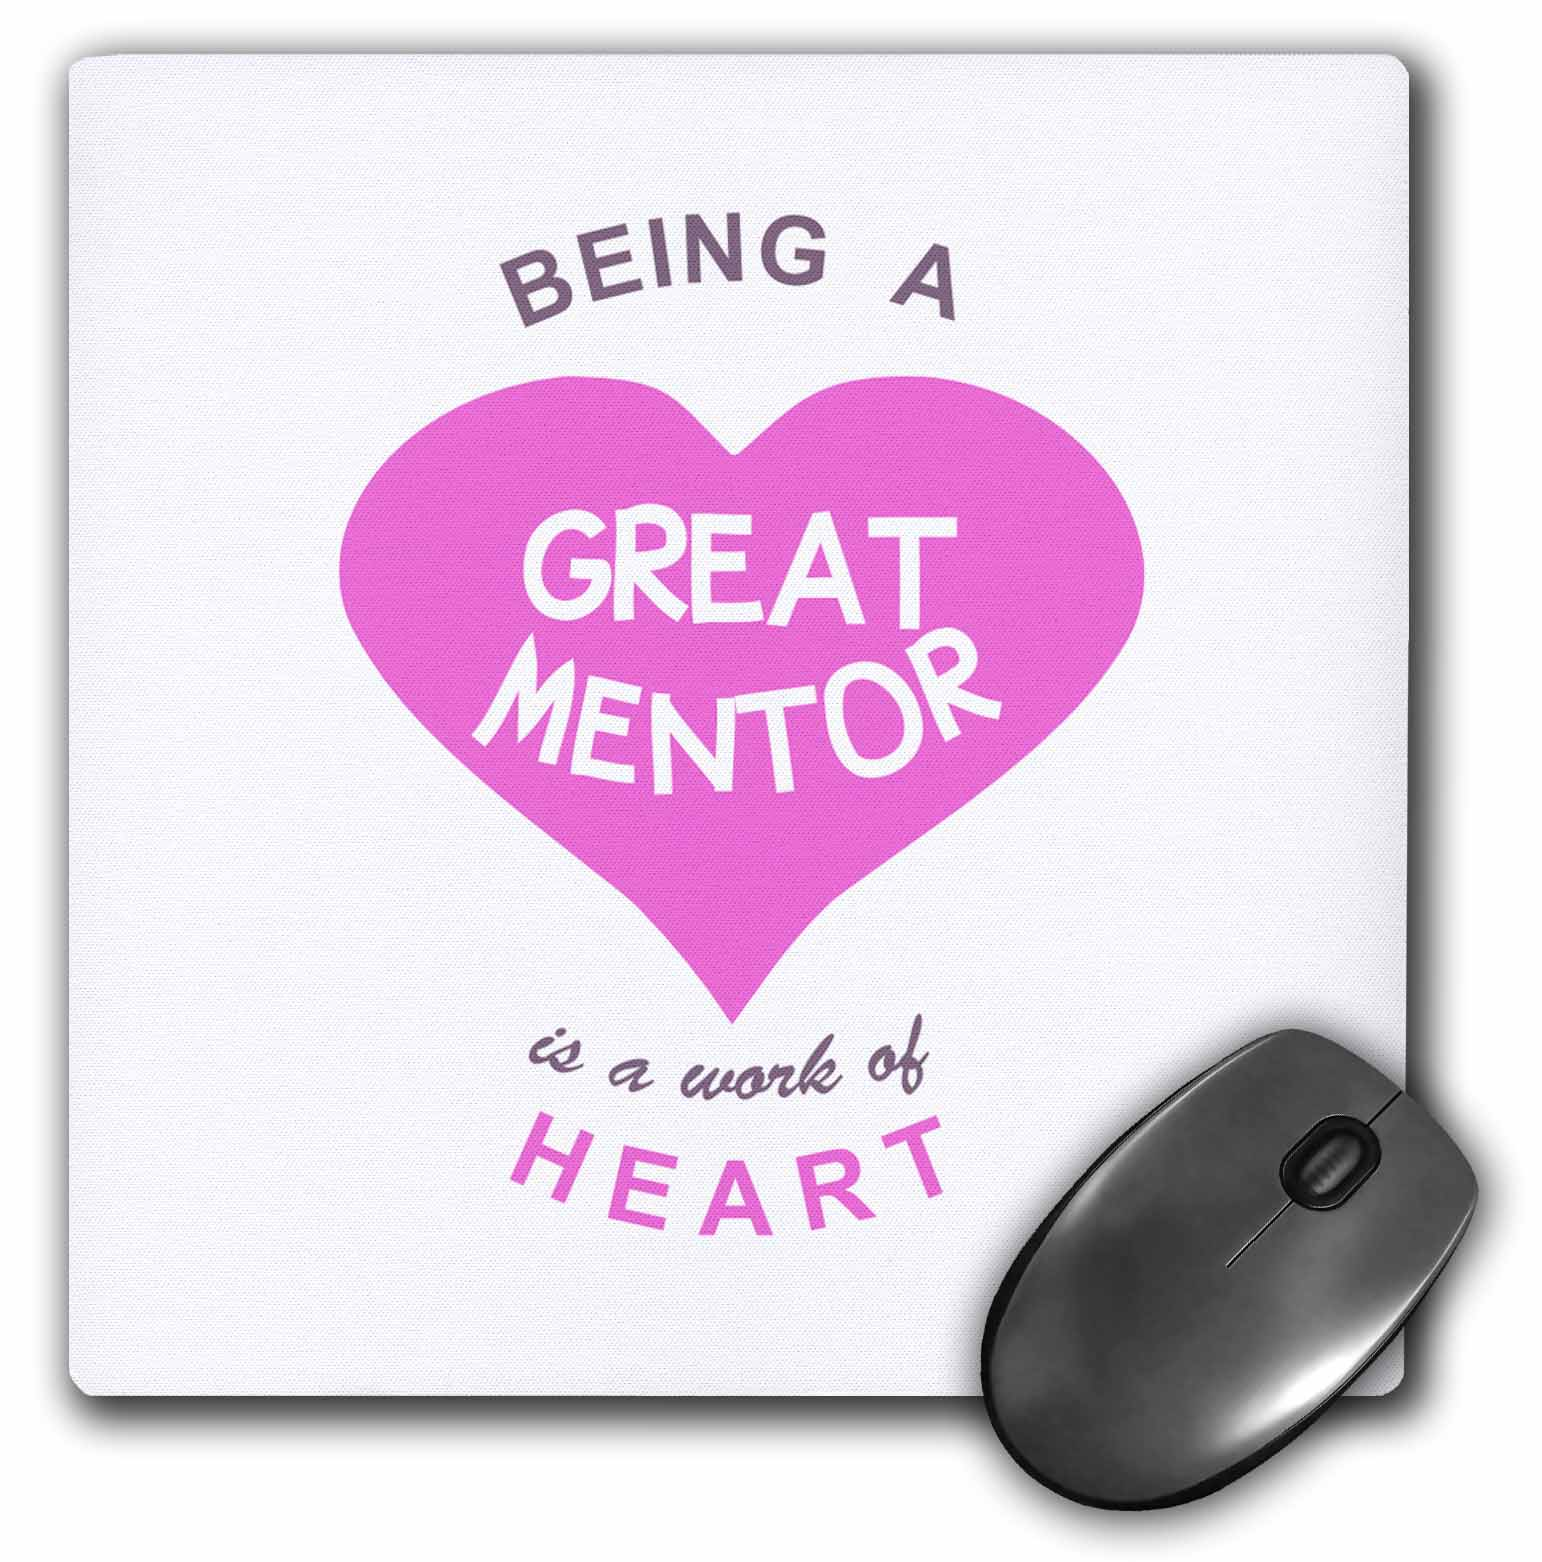 3dRose Being a Great Mentor is a work of Heart - pink - good mentoring quote, Mouse Pad, 8 by 8 inches